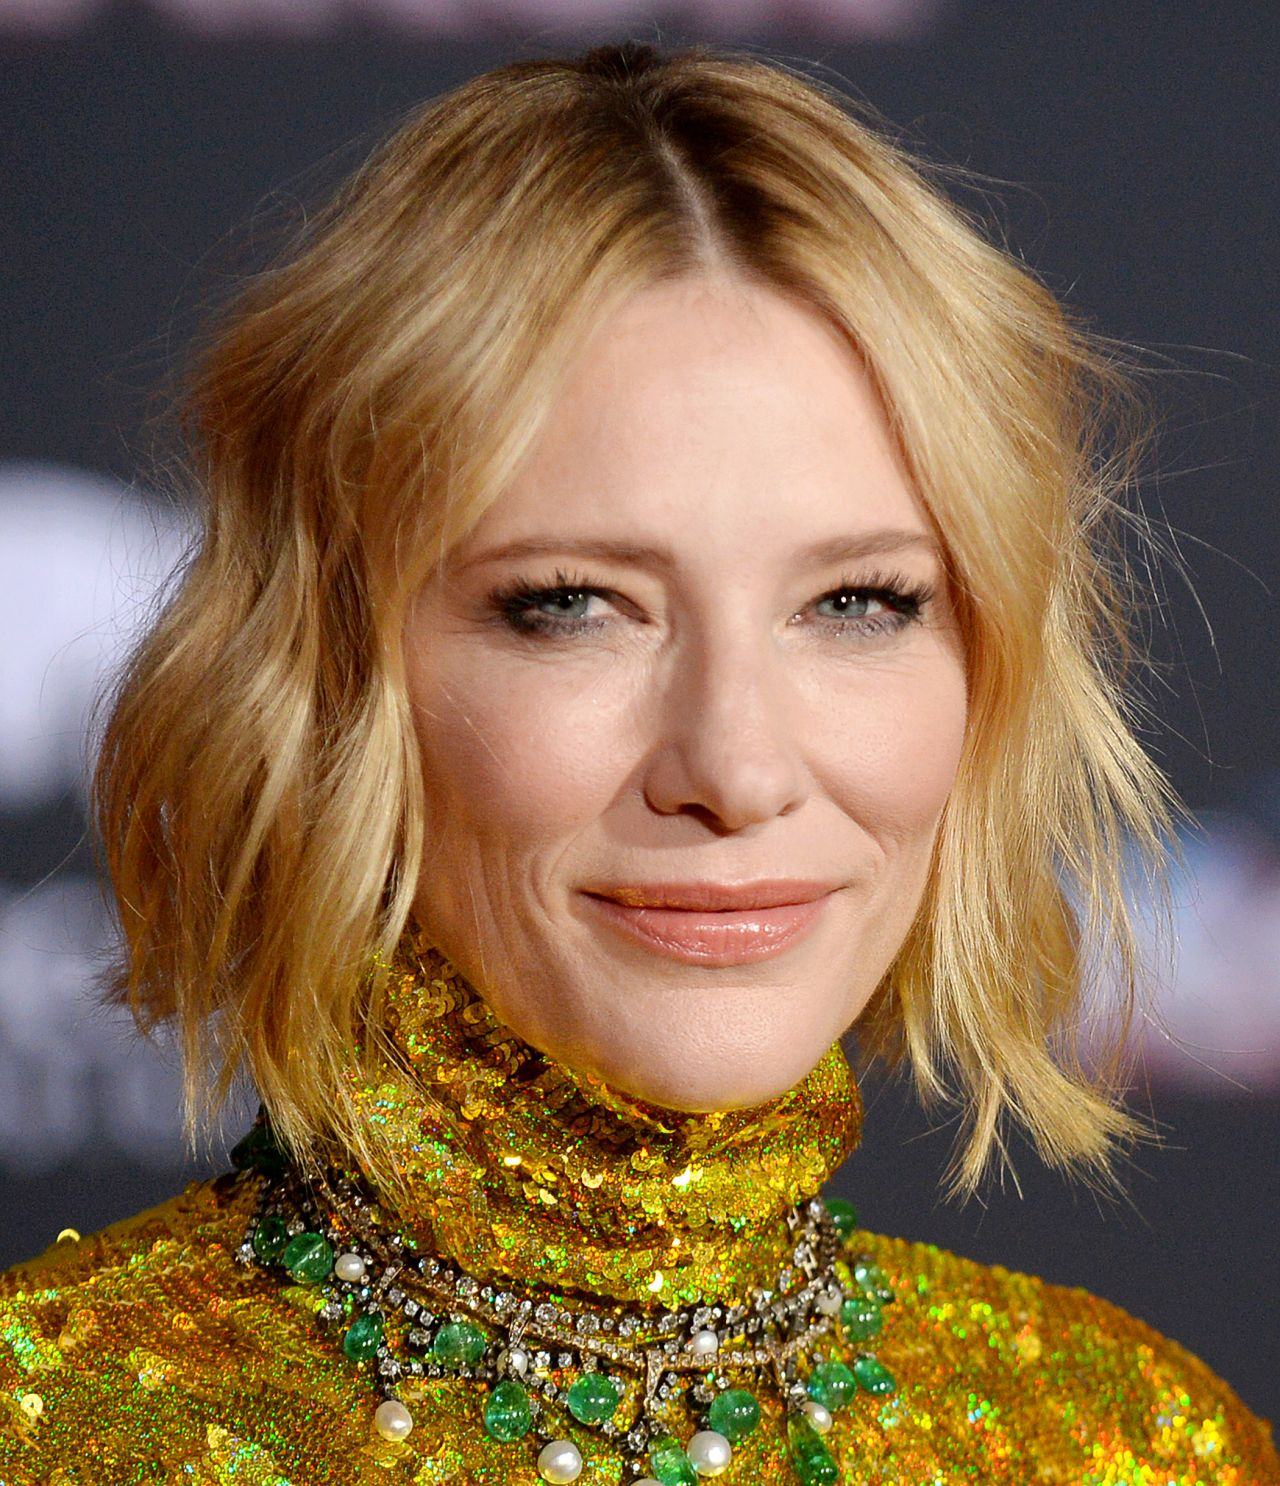 cate blanchett - photo #12